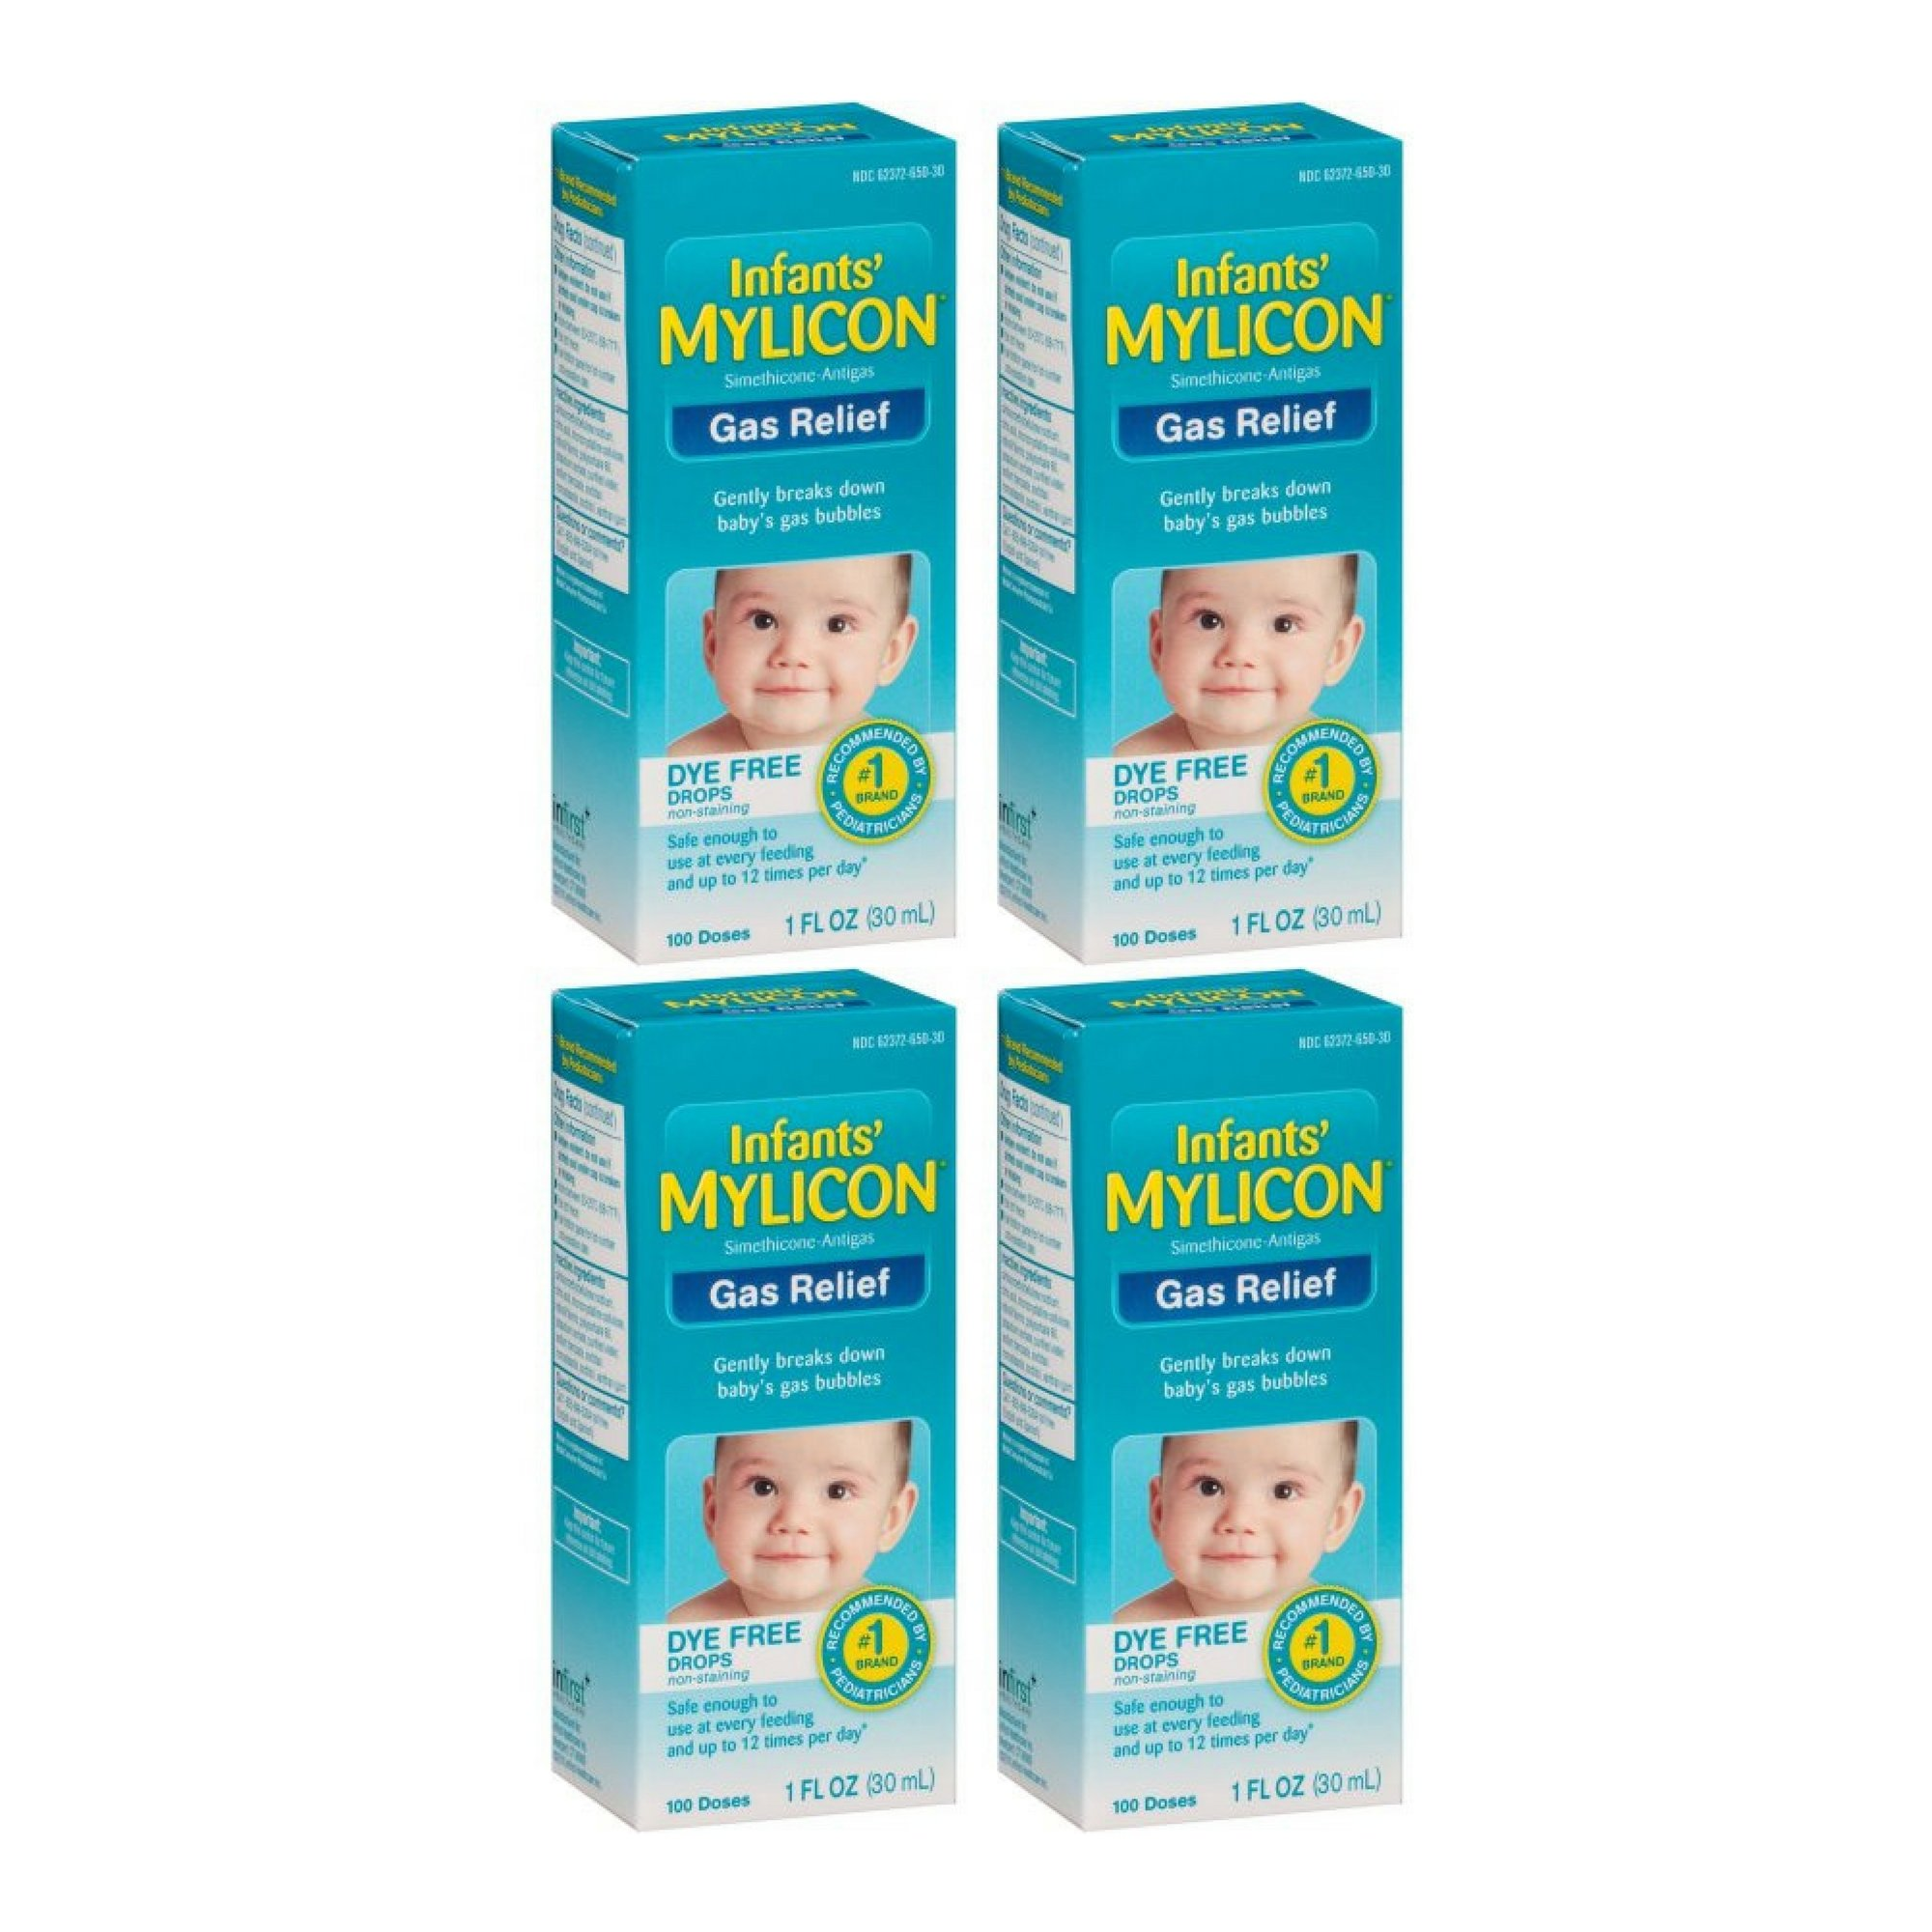 Mylicon Infants' Dye Free Gas Relief 100 Doses, 1 Fl Oz - 4 Boxes